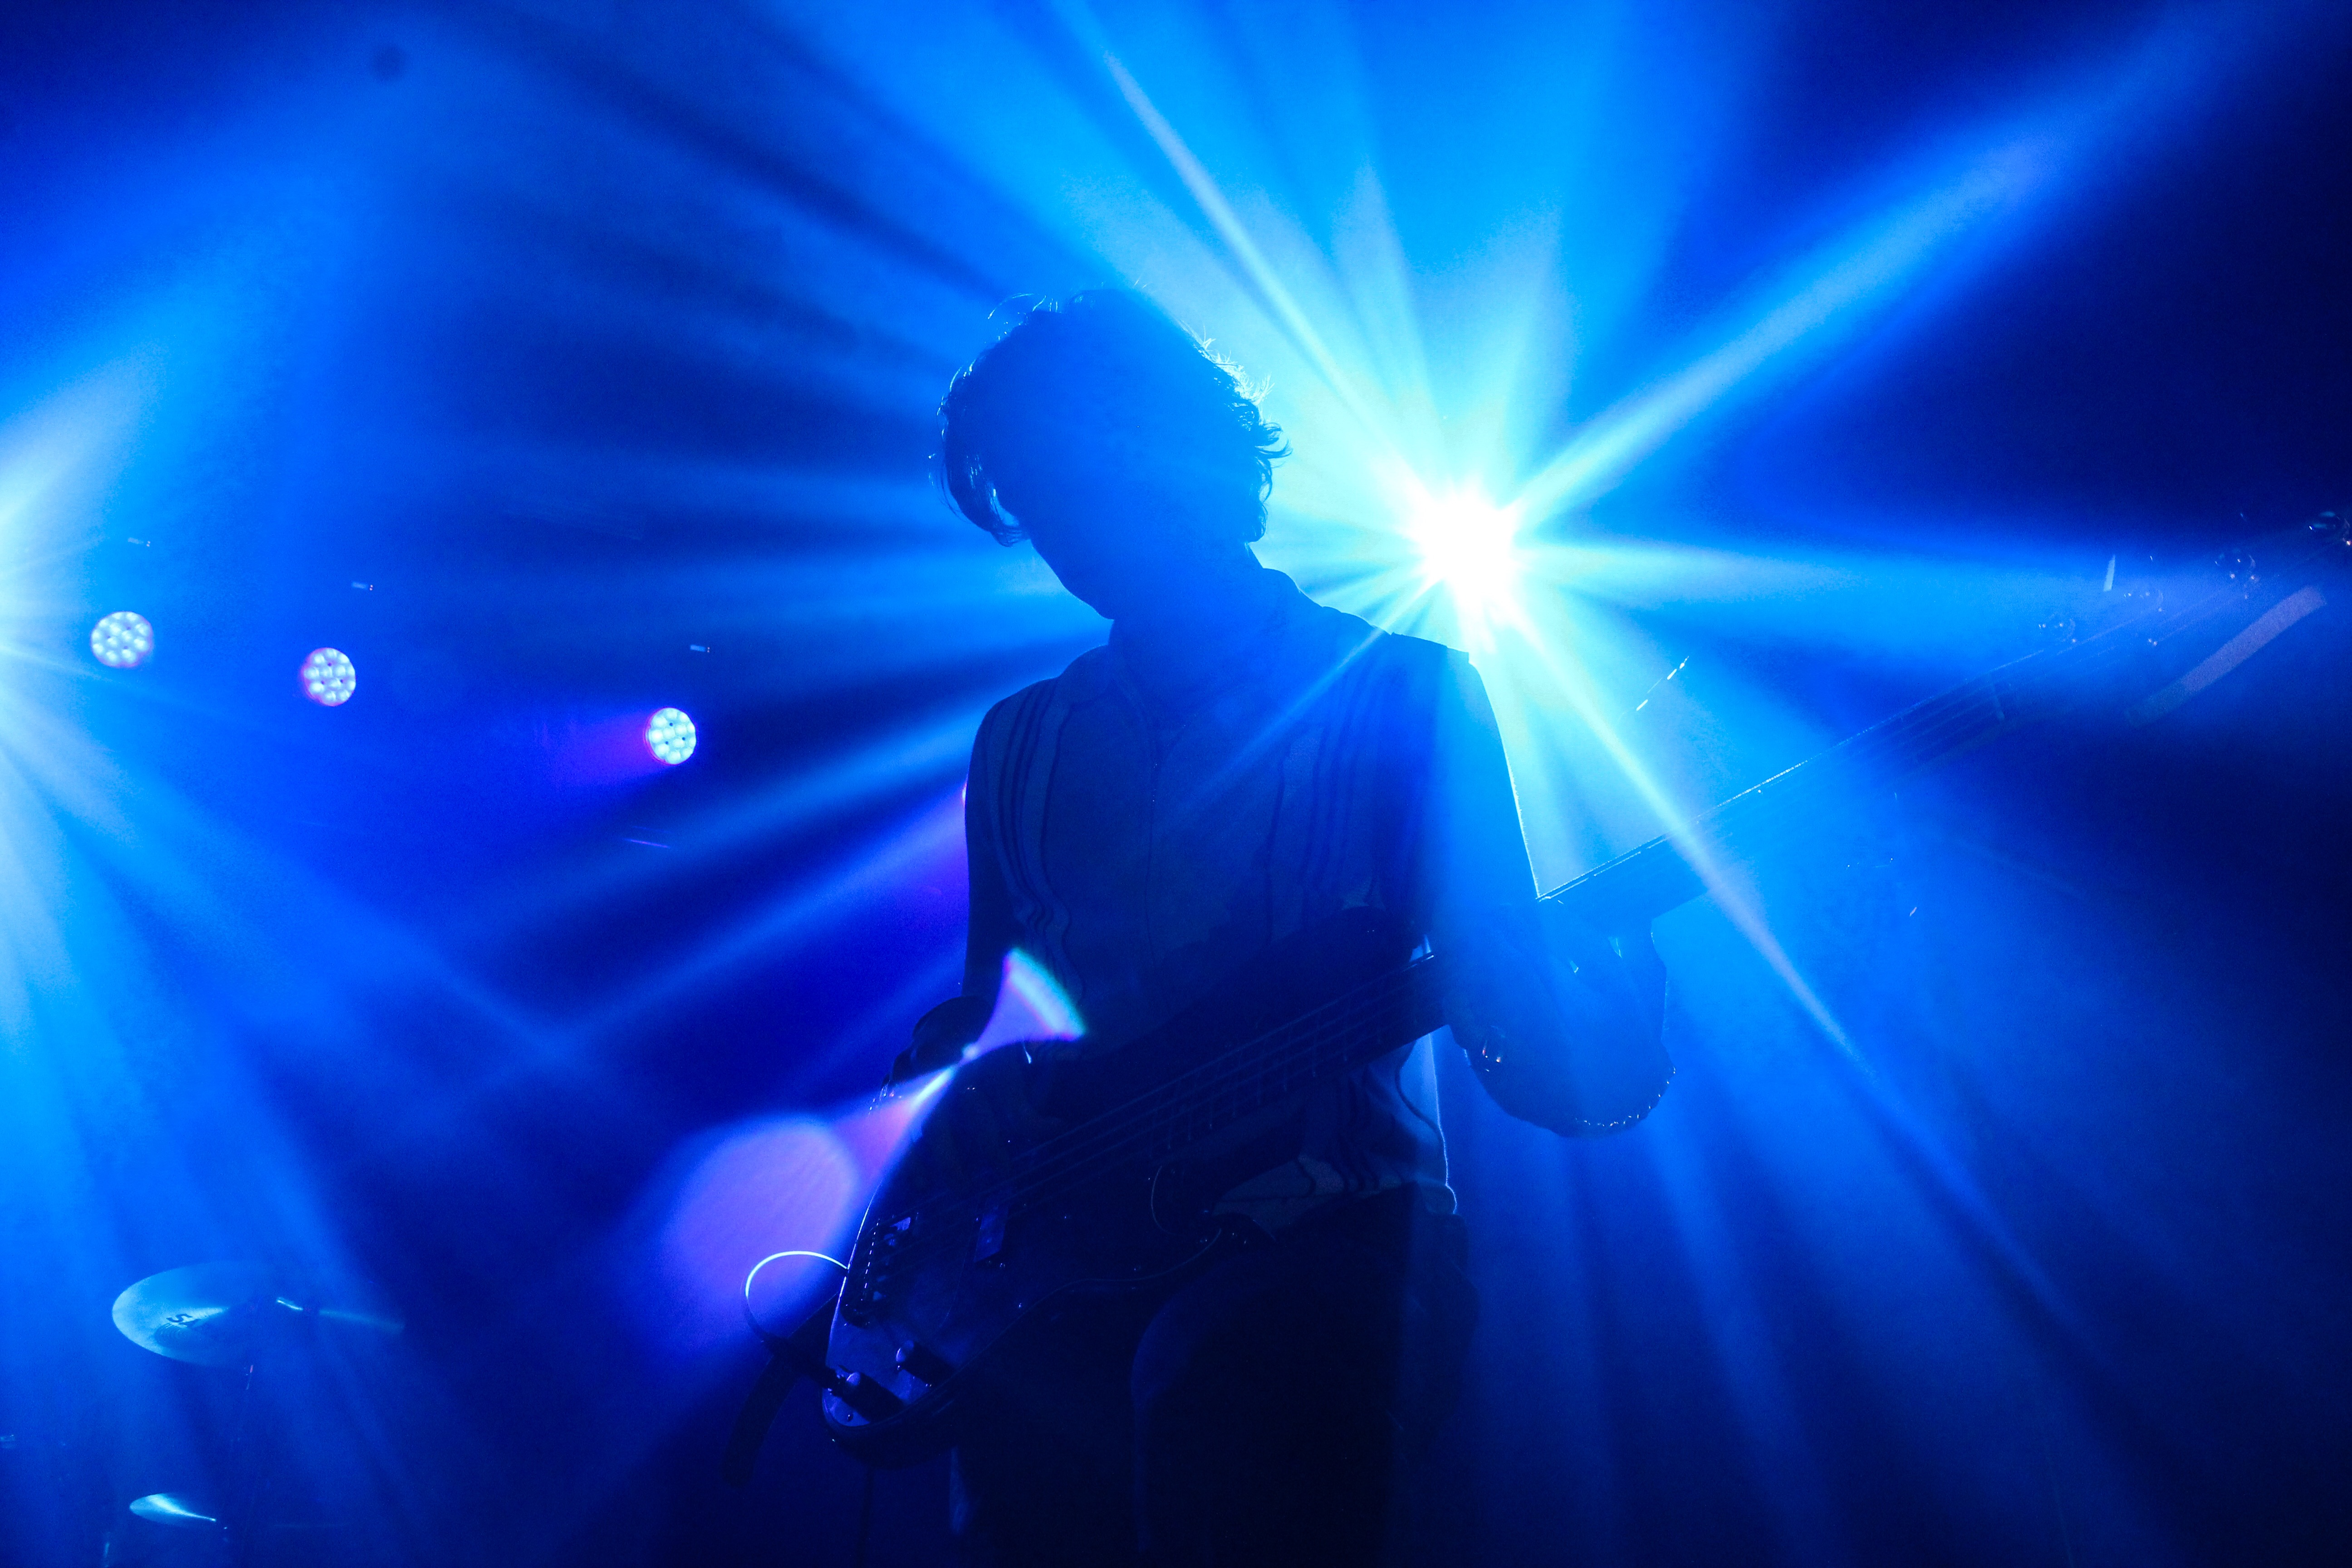 Bass player, Robert Keating shrouded in light. Photo taken by Leanne Gabriel.